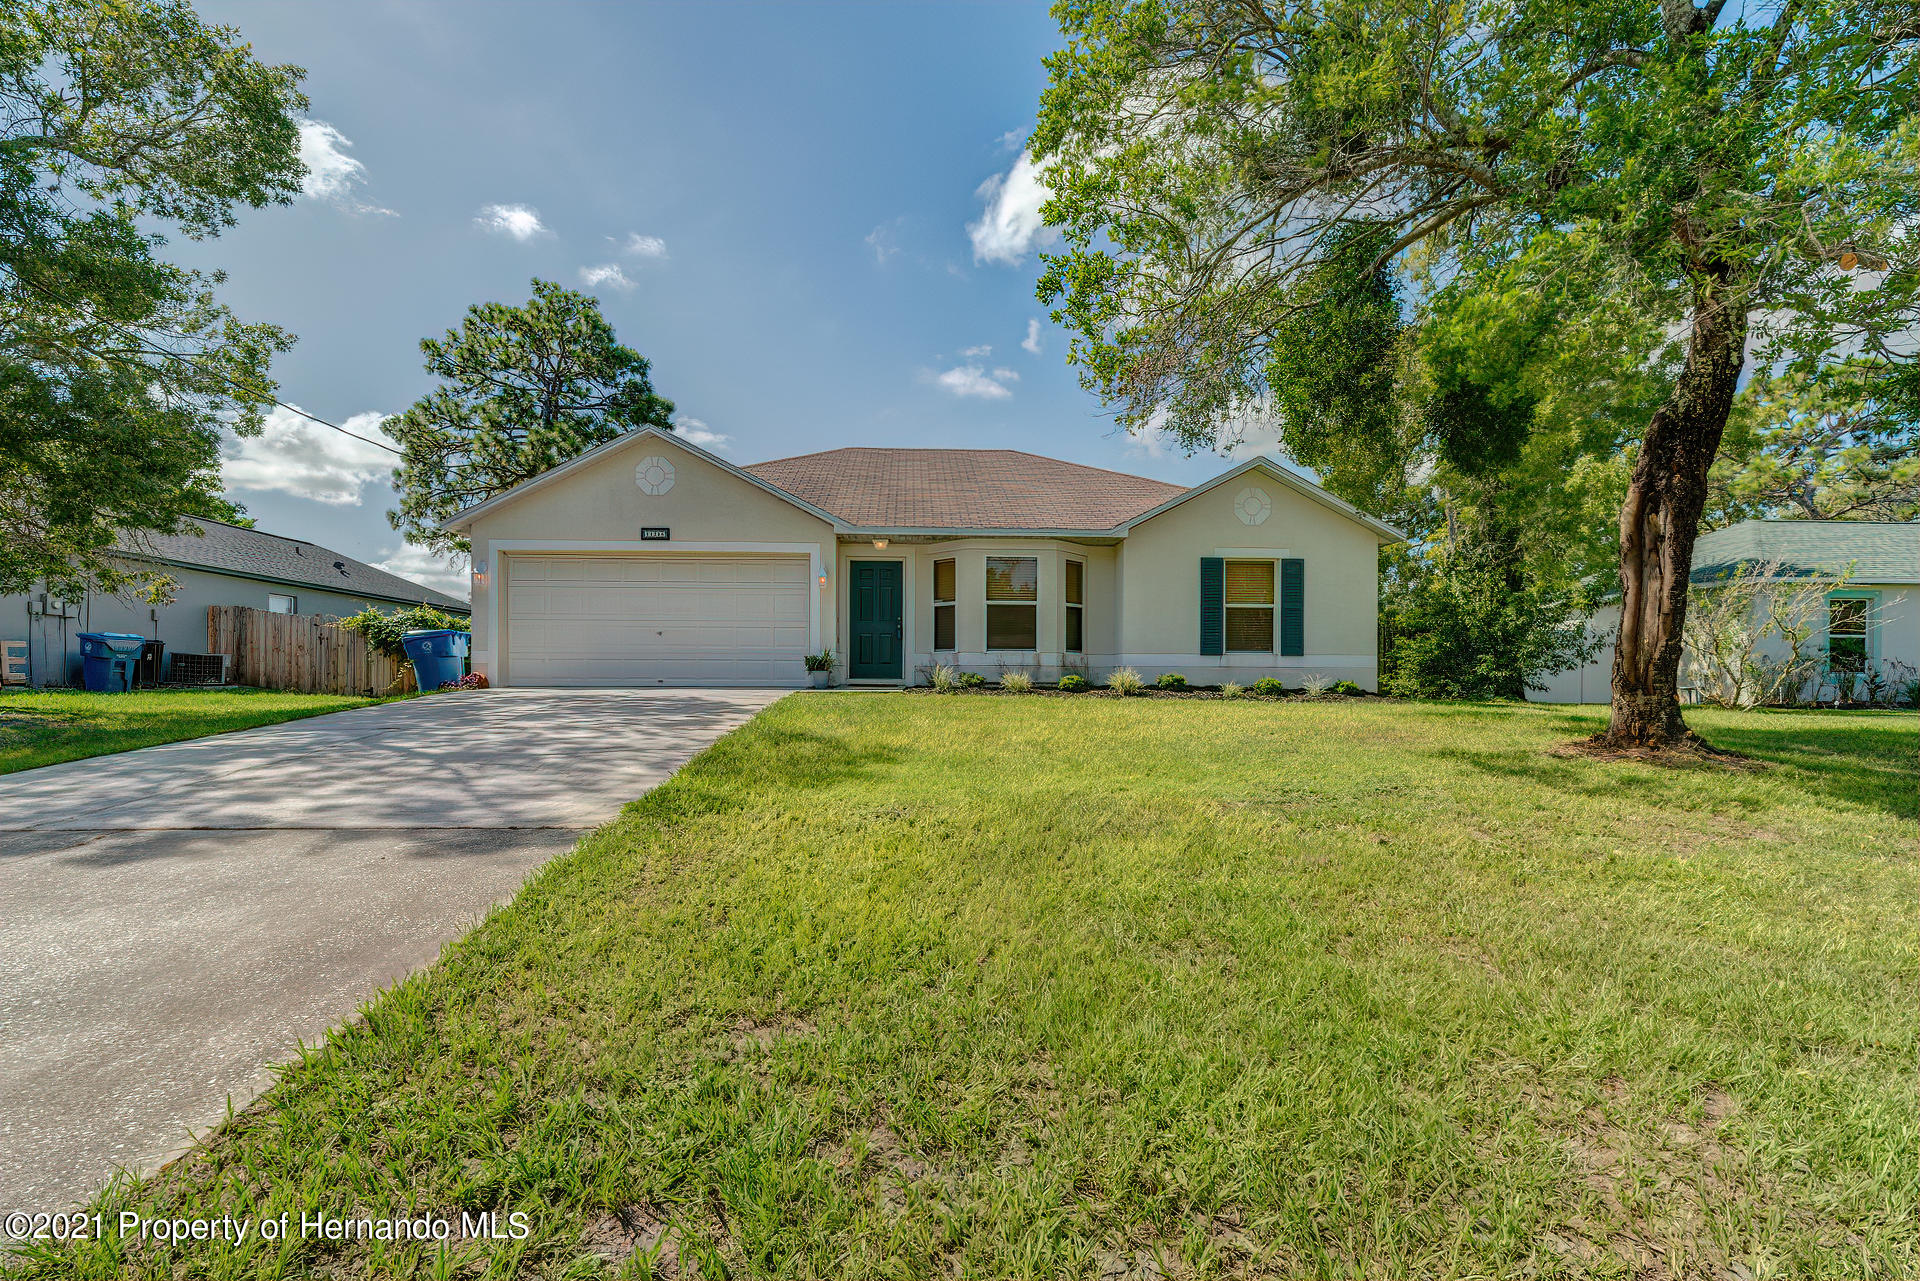 Details for 11216 Marquette Street, Spring Hill, FL 34609